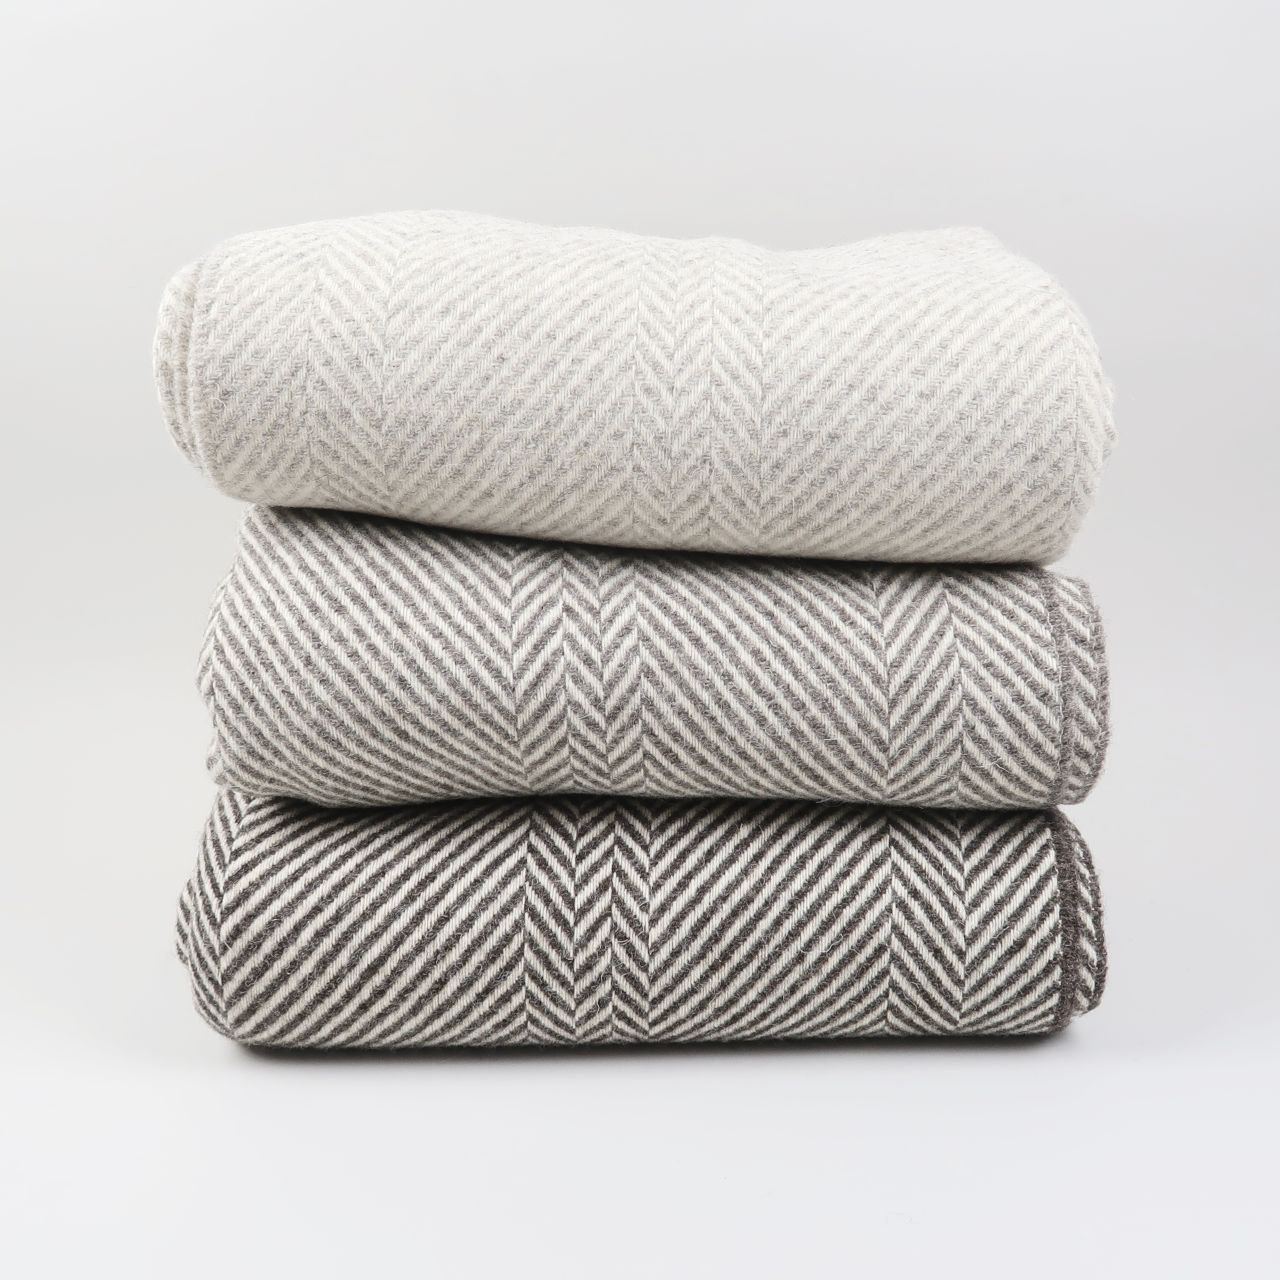 Jacob Wool Thick Chevron Weave Blanket, woven in Scotland by Greengrove Weavers